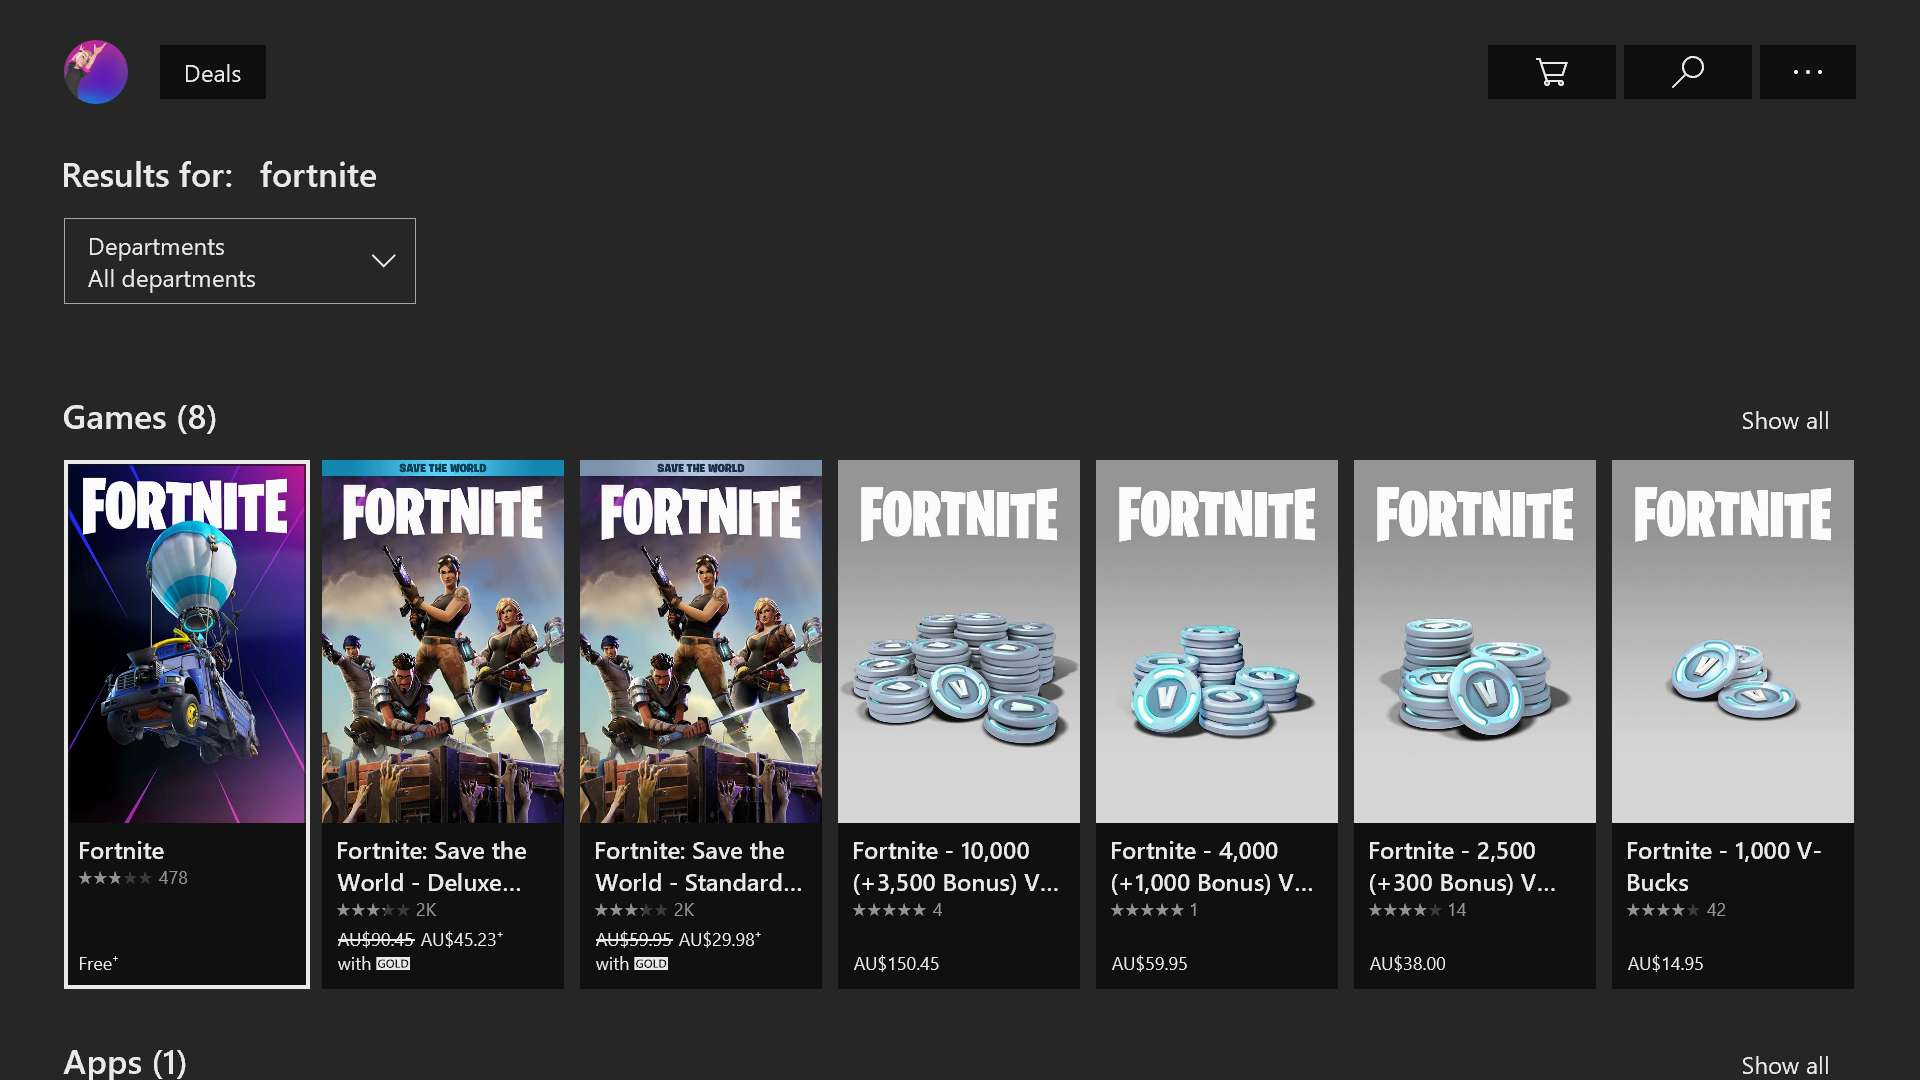 How to Get Fortnite on Xbox One